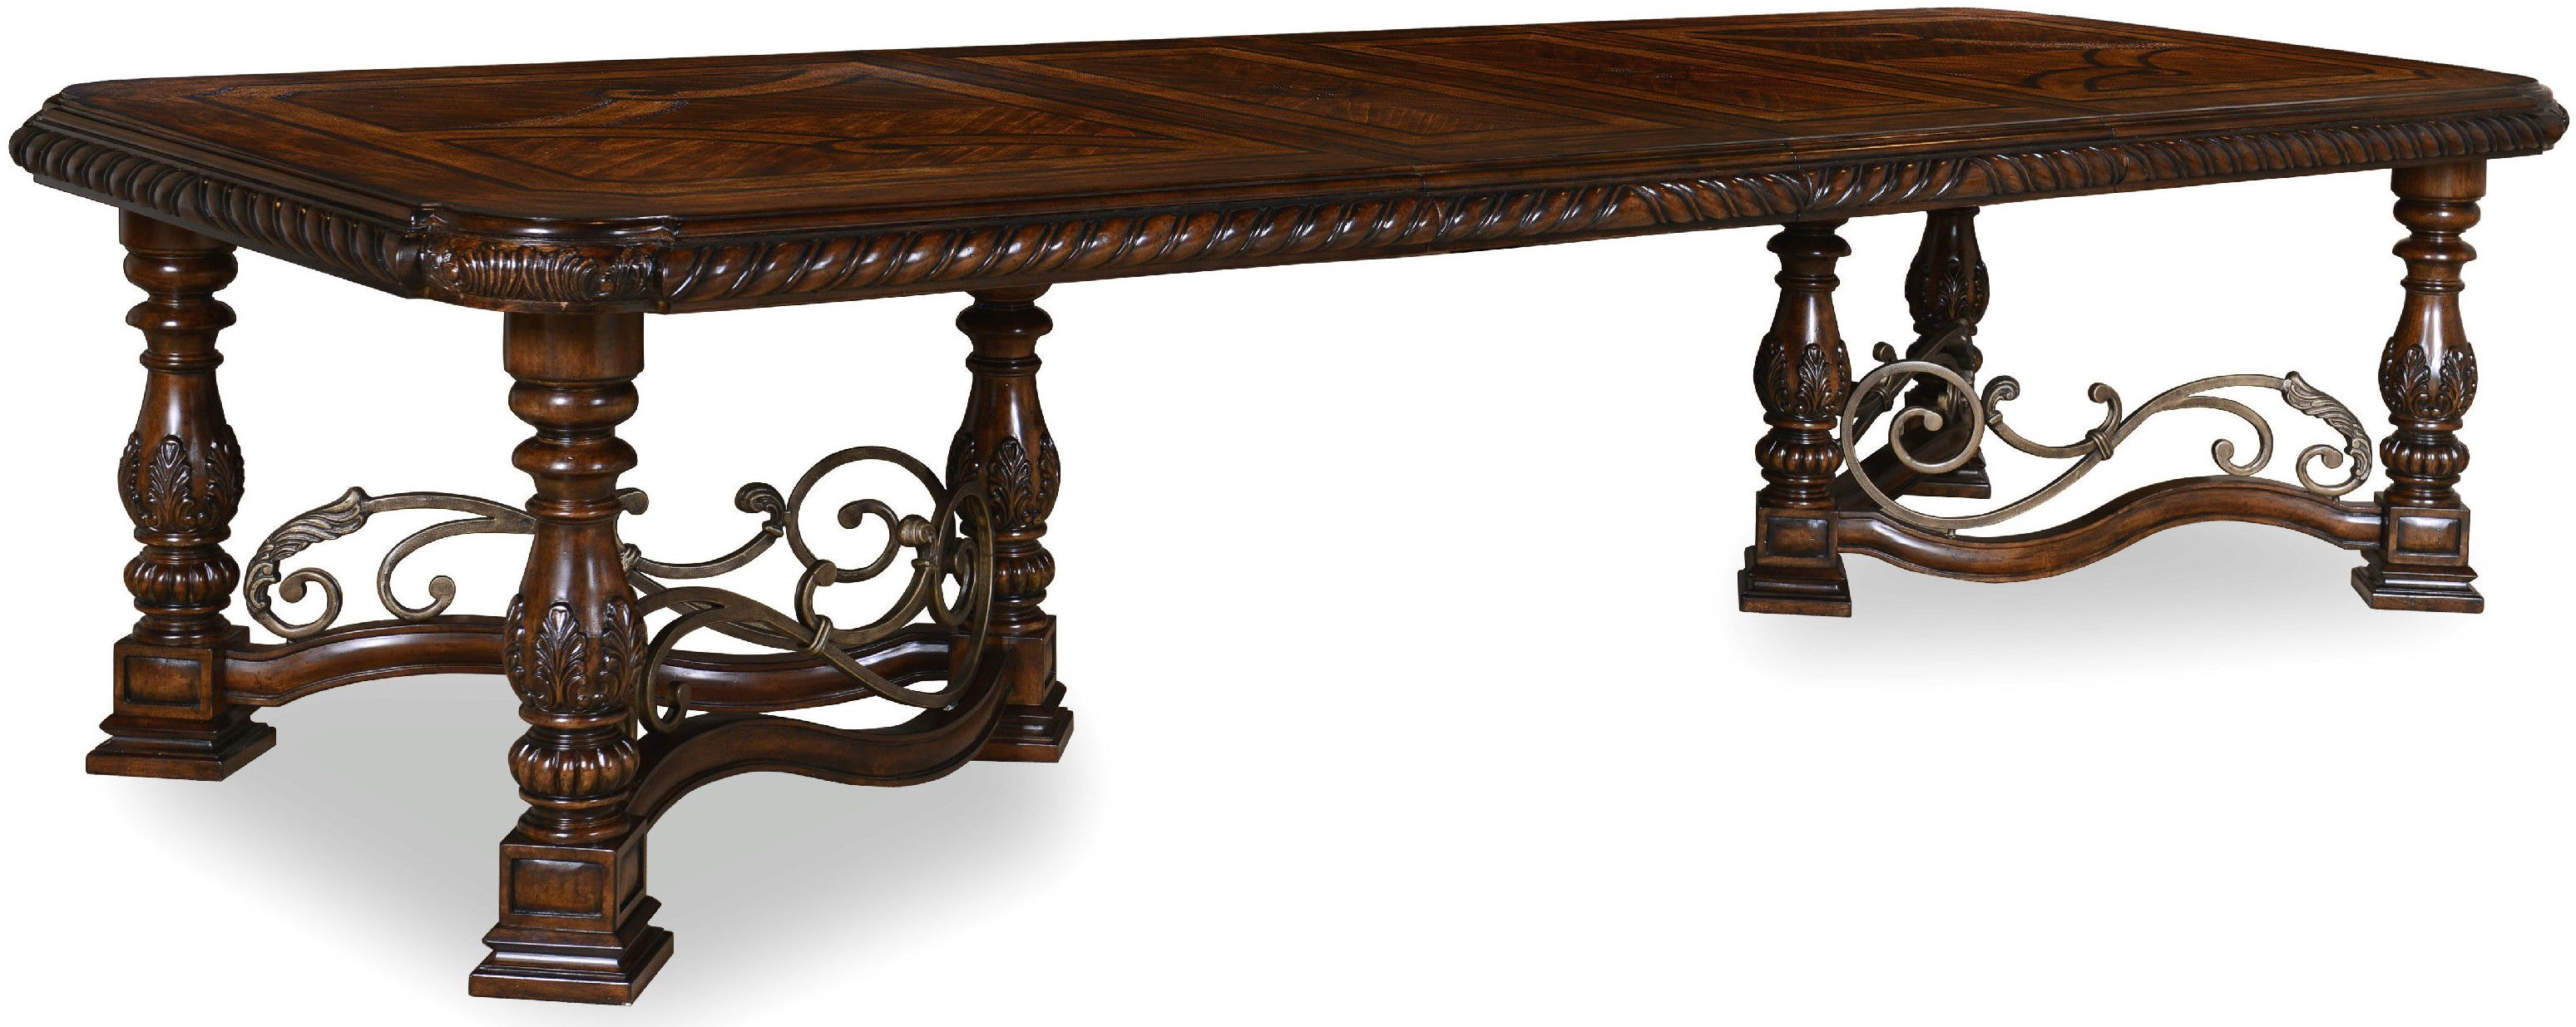 ART Furniture Dining Room Trestle Dining Table 209221 2304  : 209221 2304sl1 from www.swanns.com size 768 x 576 jpeg 28kB